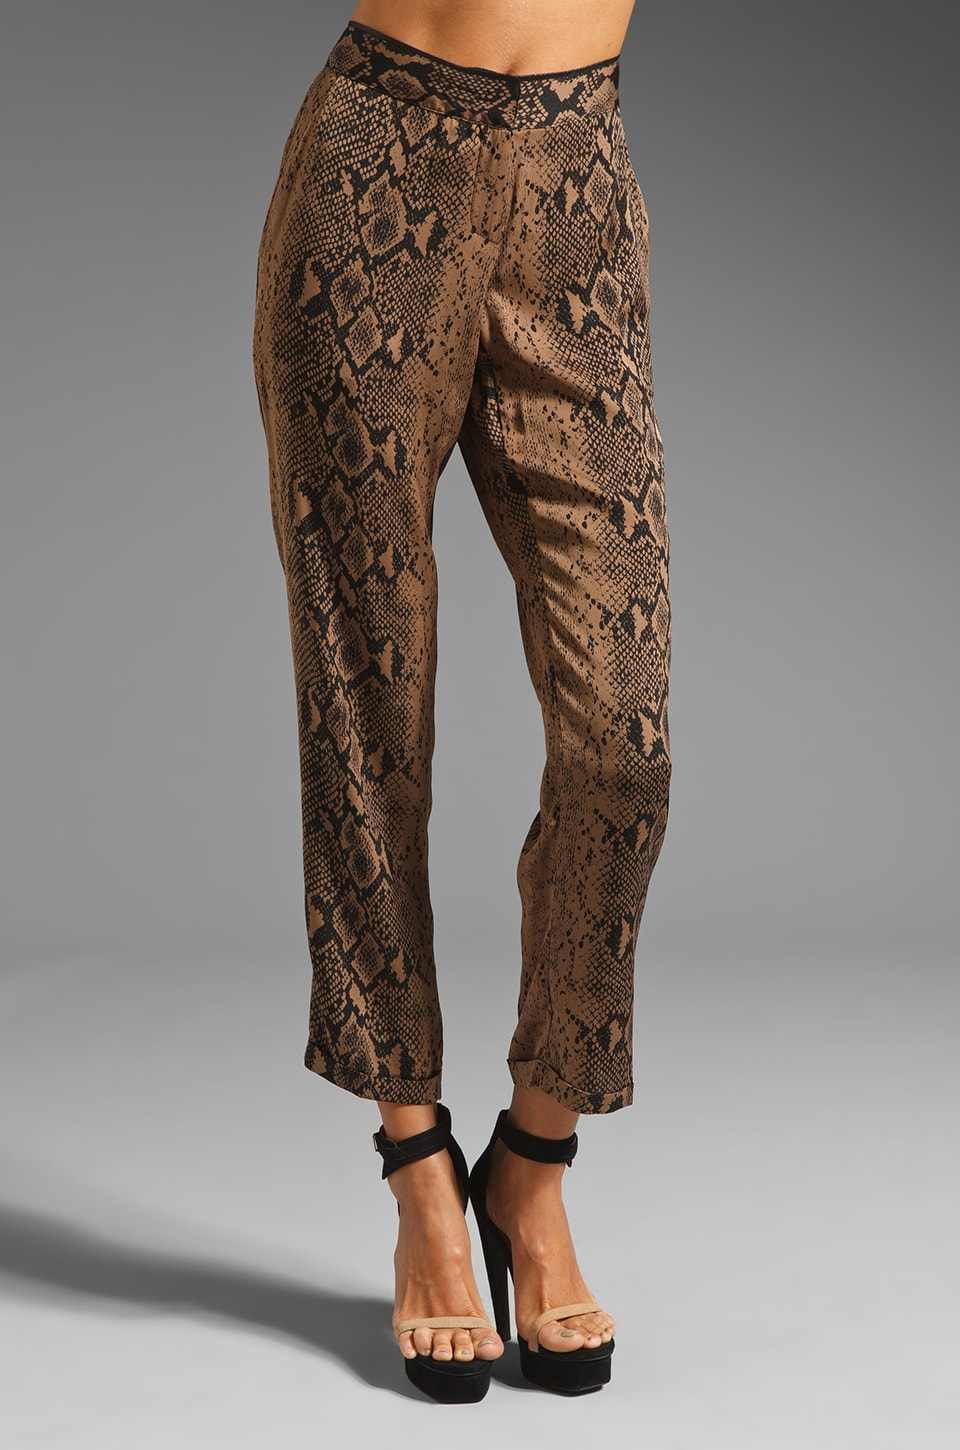 Dolce Vita Dima Pant in Natural